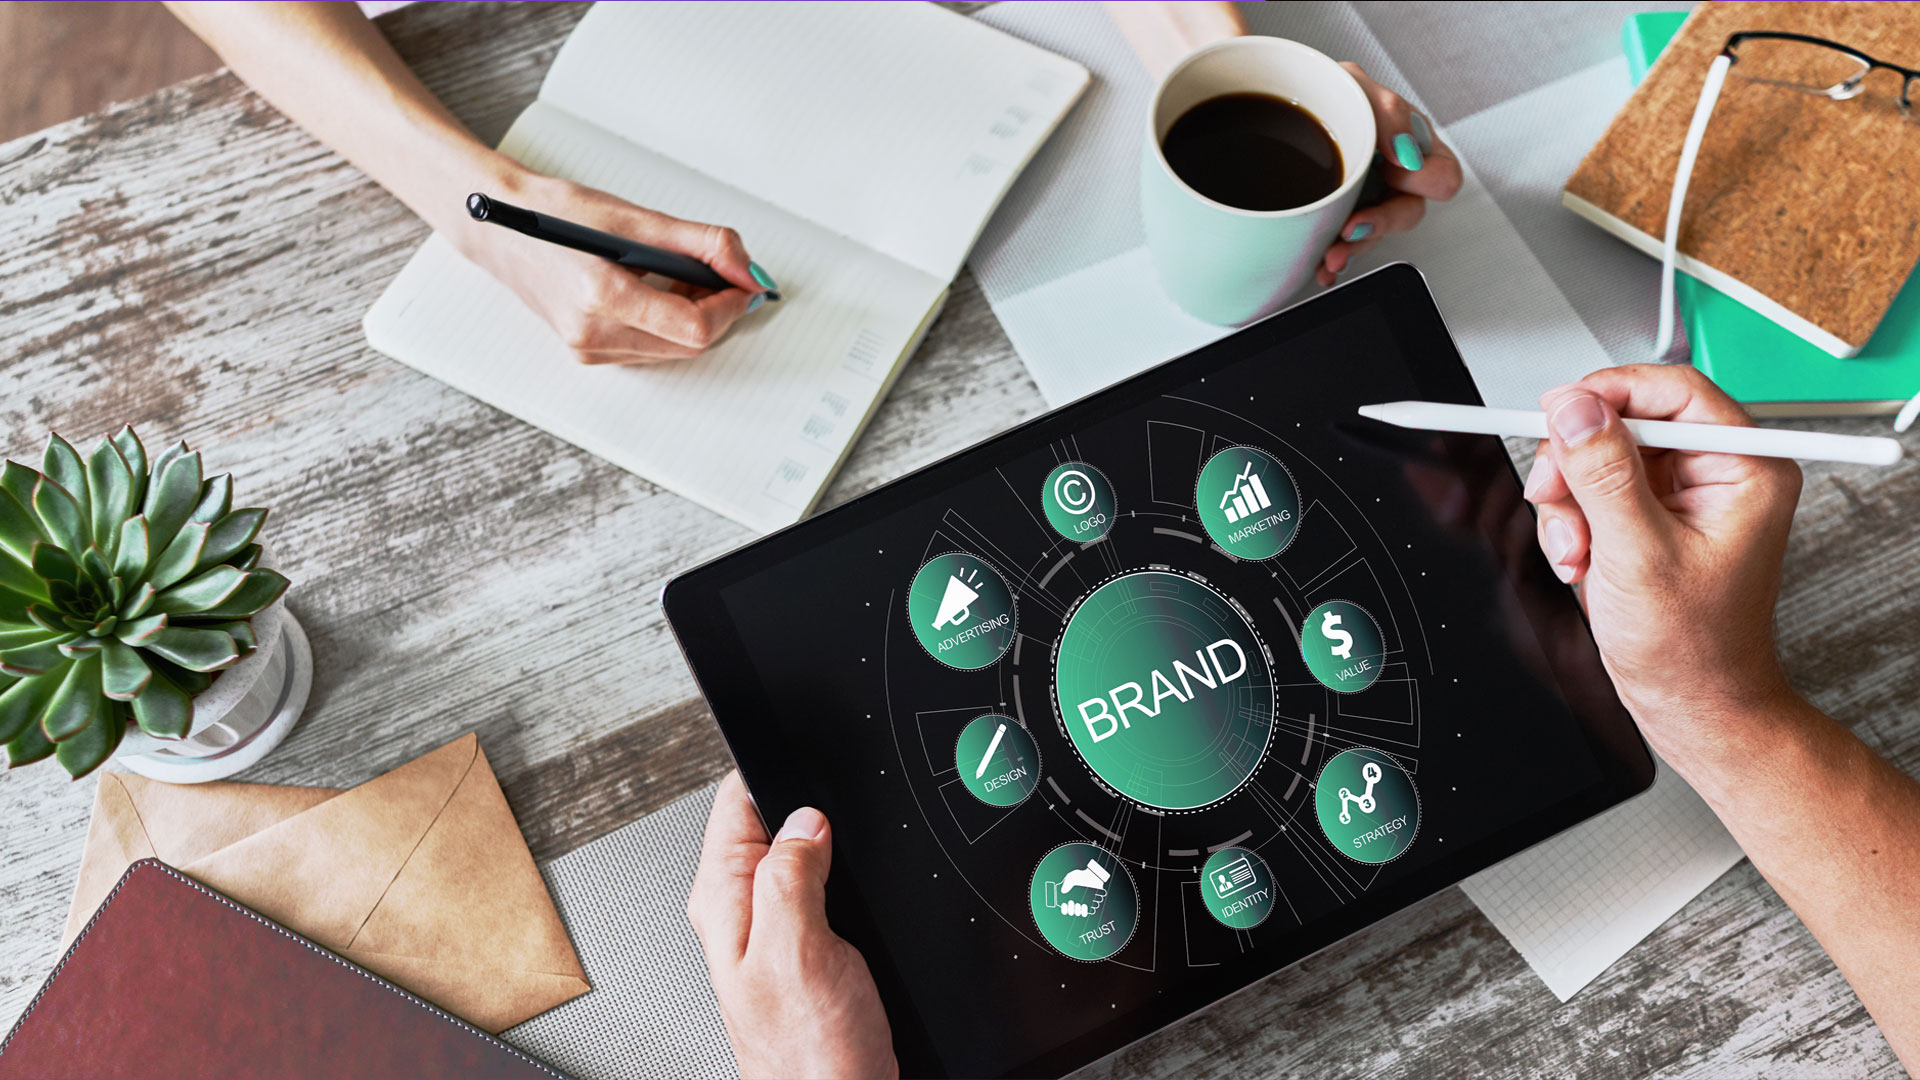 5 Strategies for Effective Brand Management